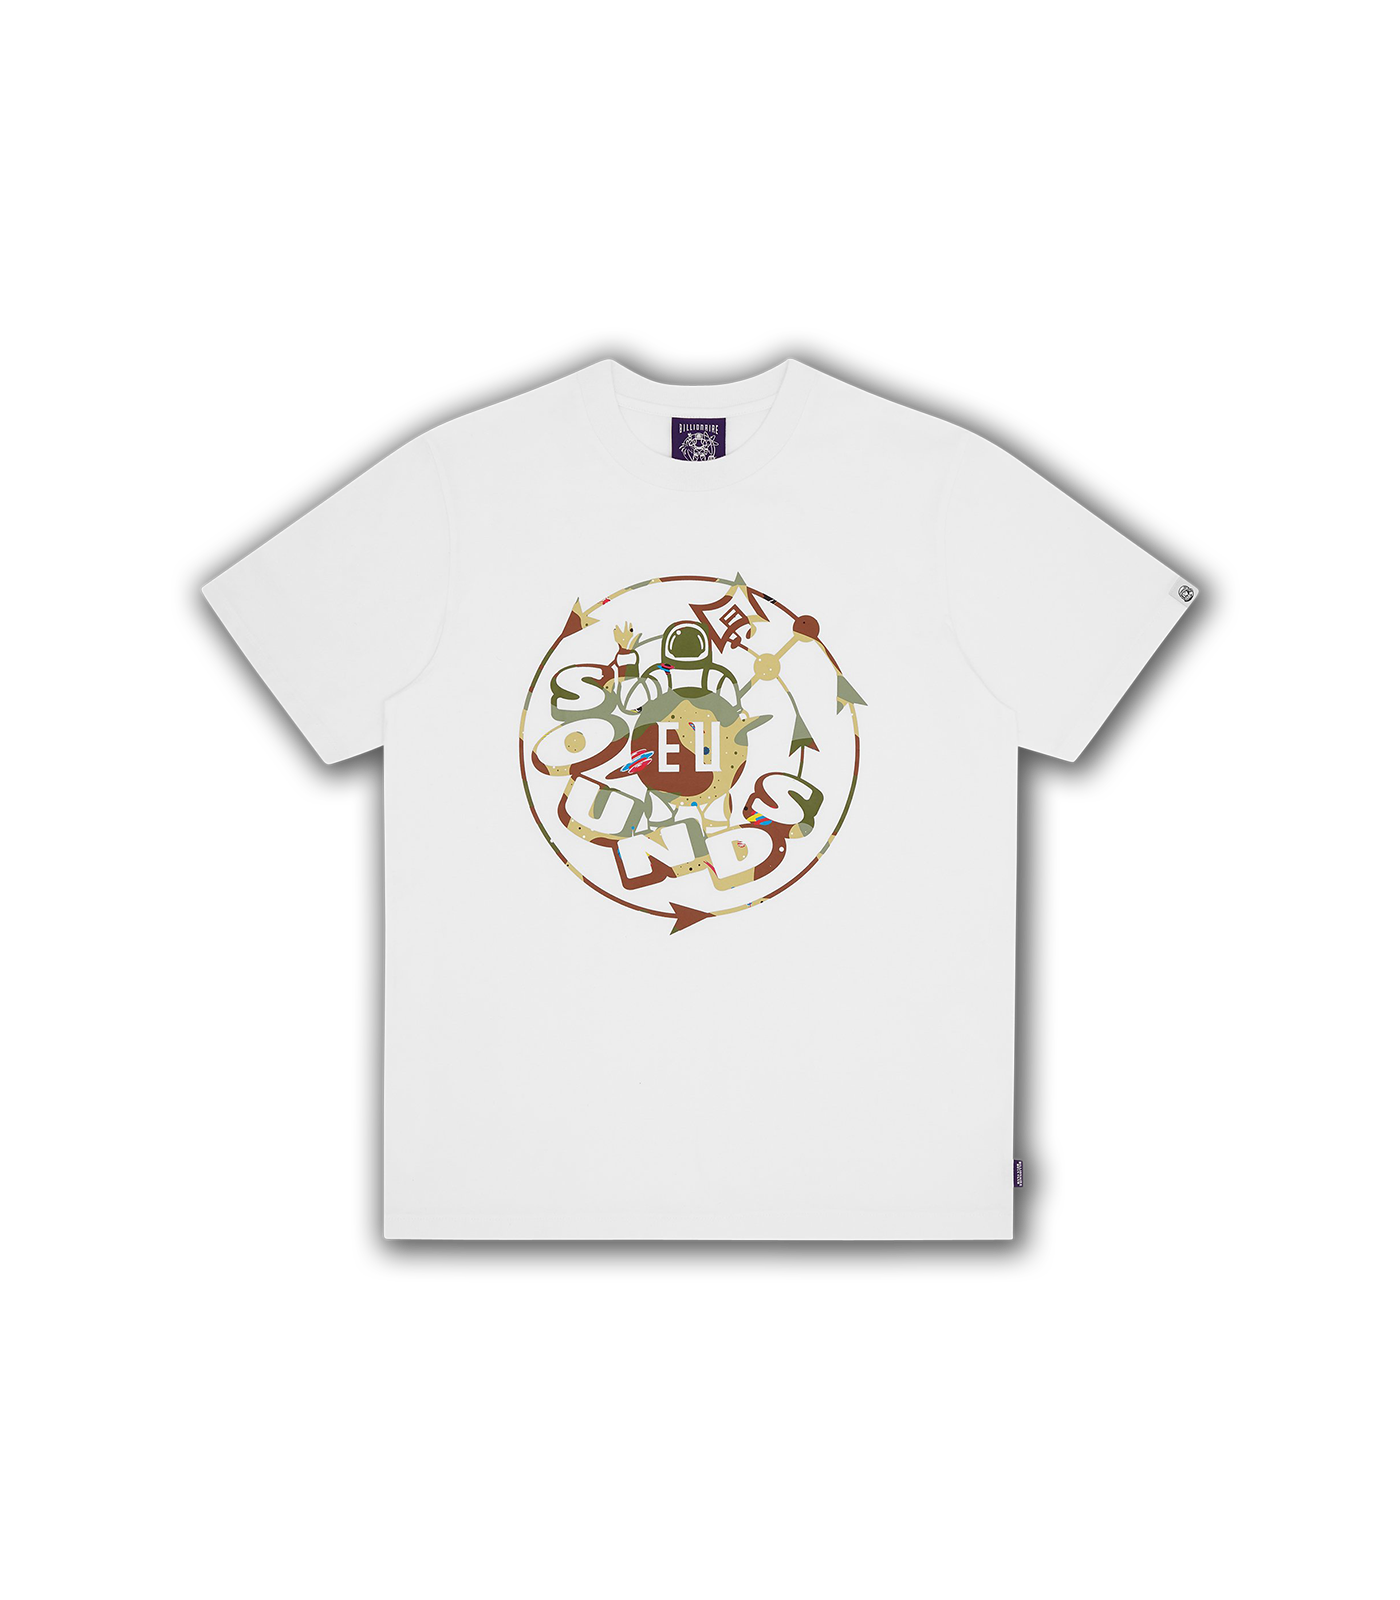 EU SOUNDS T-SHIRT - WHITE